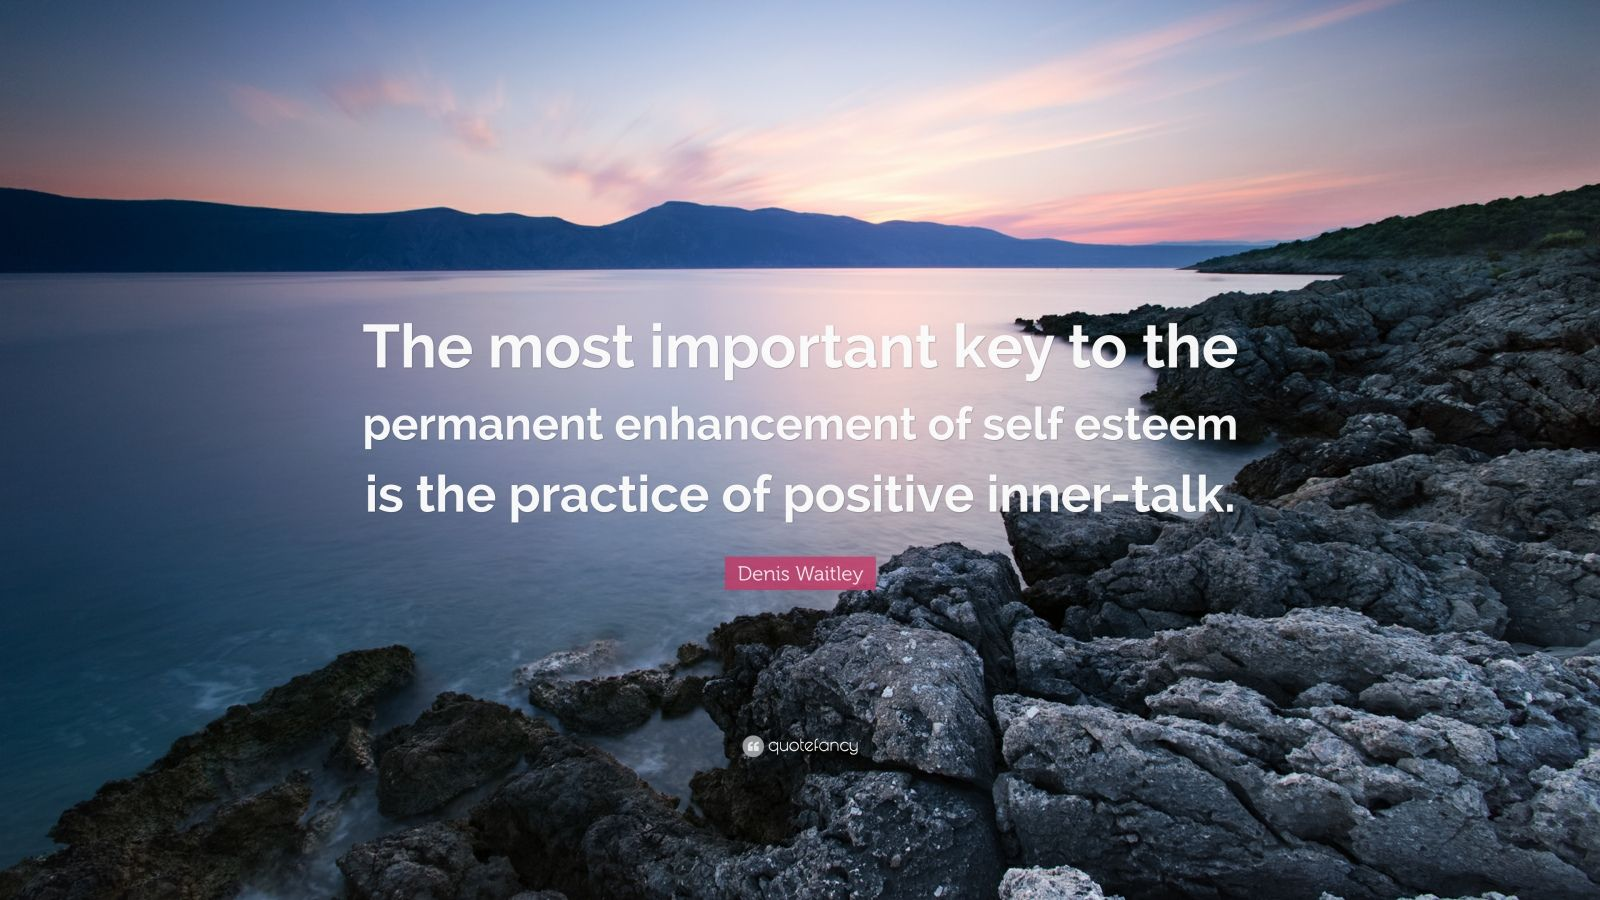 """Denis Waitley Quote: """"The most important key to the permanent enhancement of self esteem is the practice of positive inner-talk."""""""